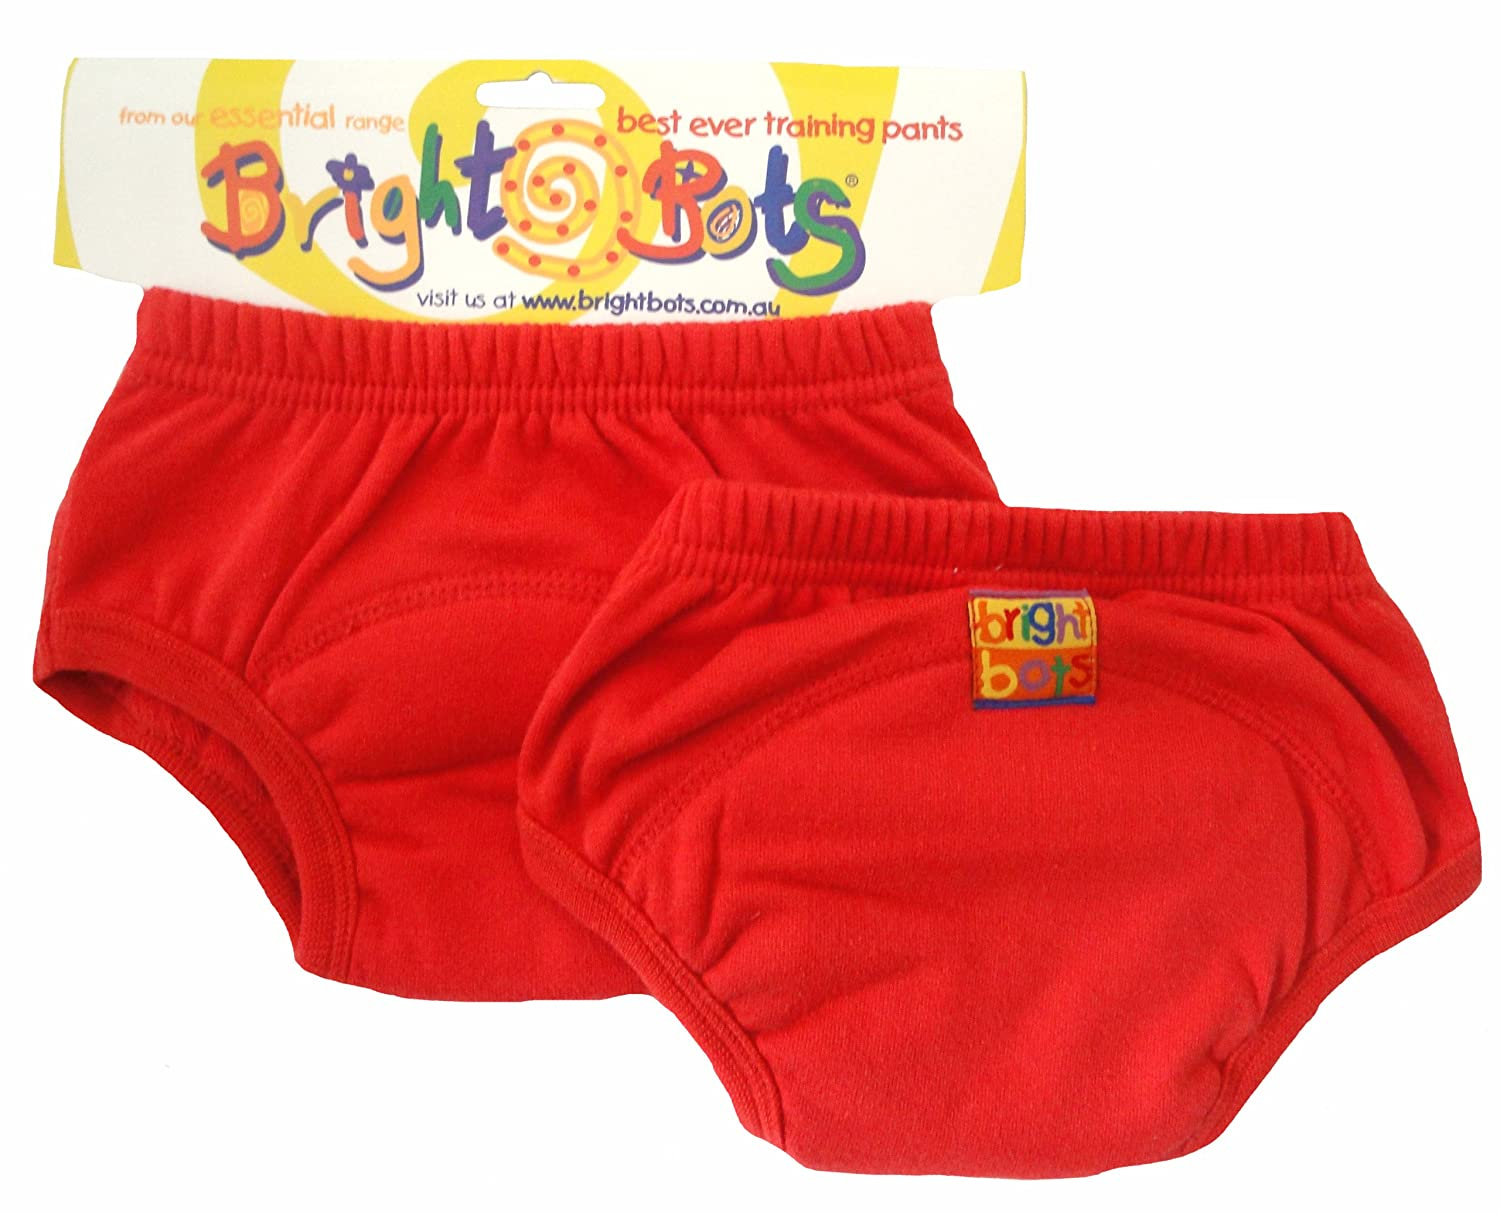 Bright Bots Potty Training Pants (Twin Pack, Red, Large, 24 - 30 months) 2AAETRA1-2RL